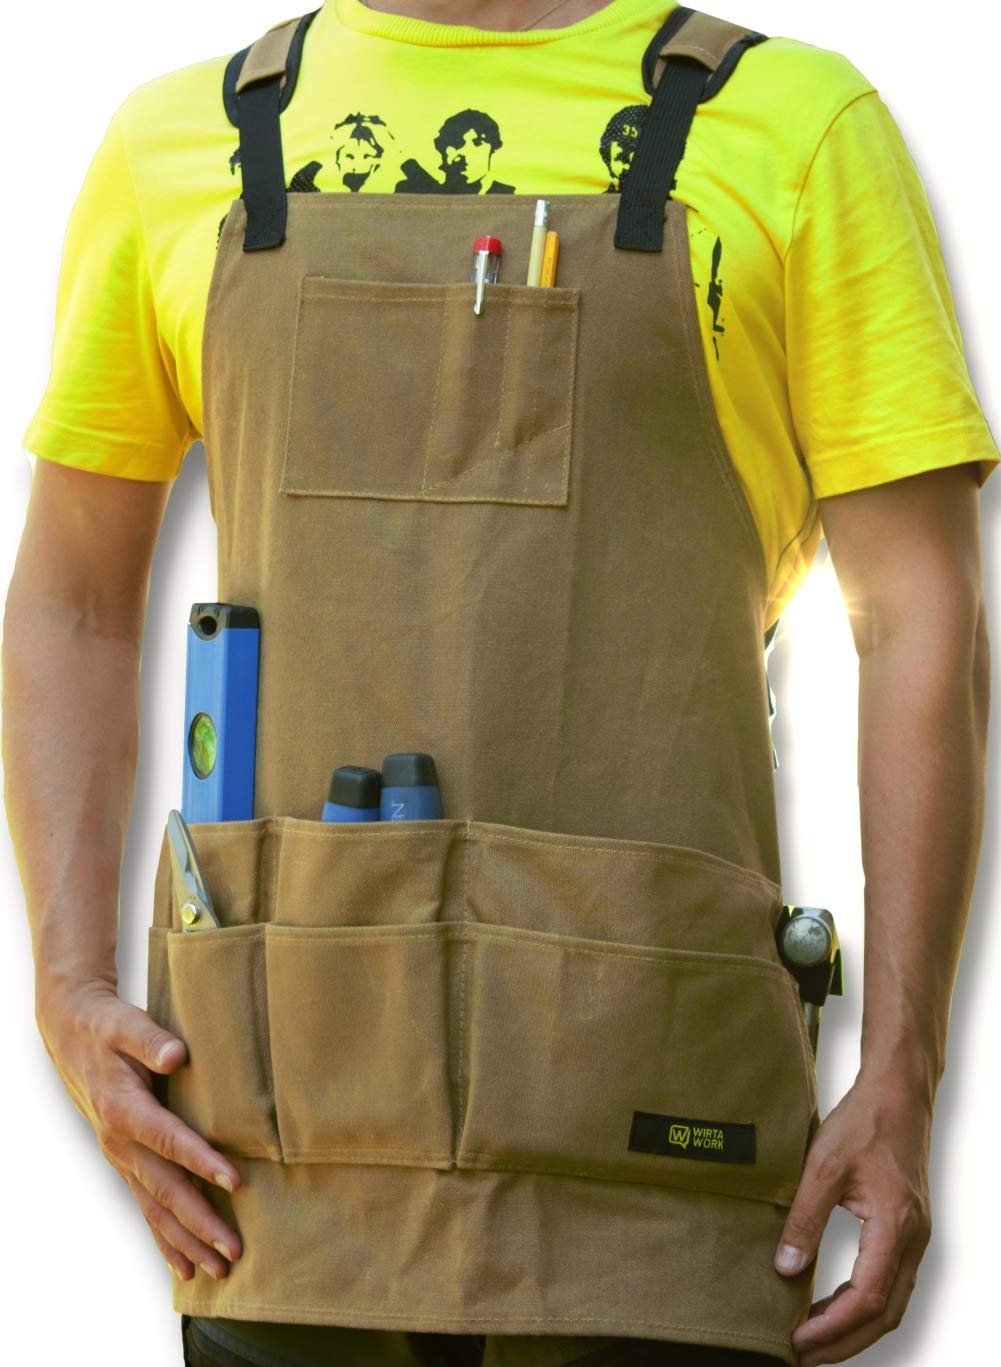 Waxed Canvas Woodworking Apron - Premium Quality Work Apron To Hold Tools For Men and Women - Carpenter, Nail, Shop or Tool Apron With Pockets. Unique and Memorable Present for Men or Woman